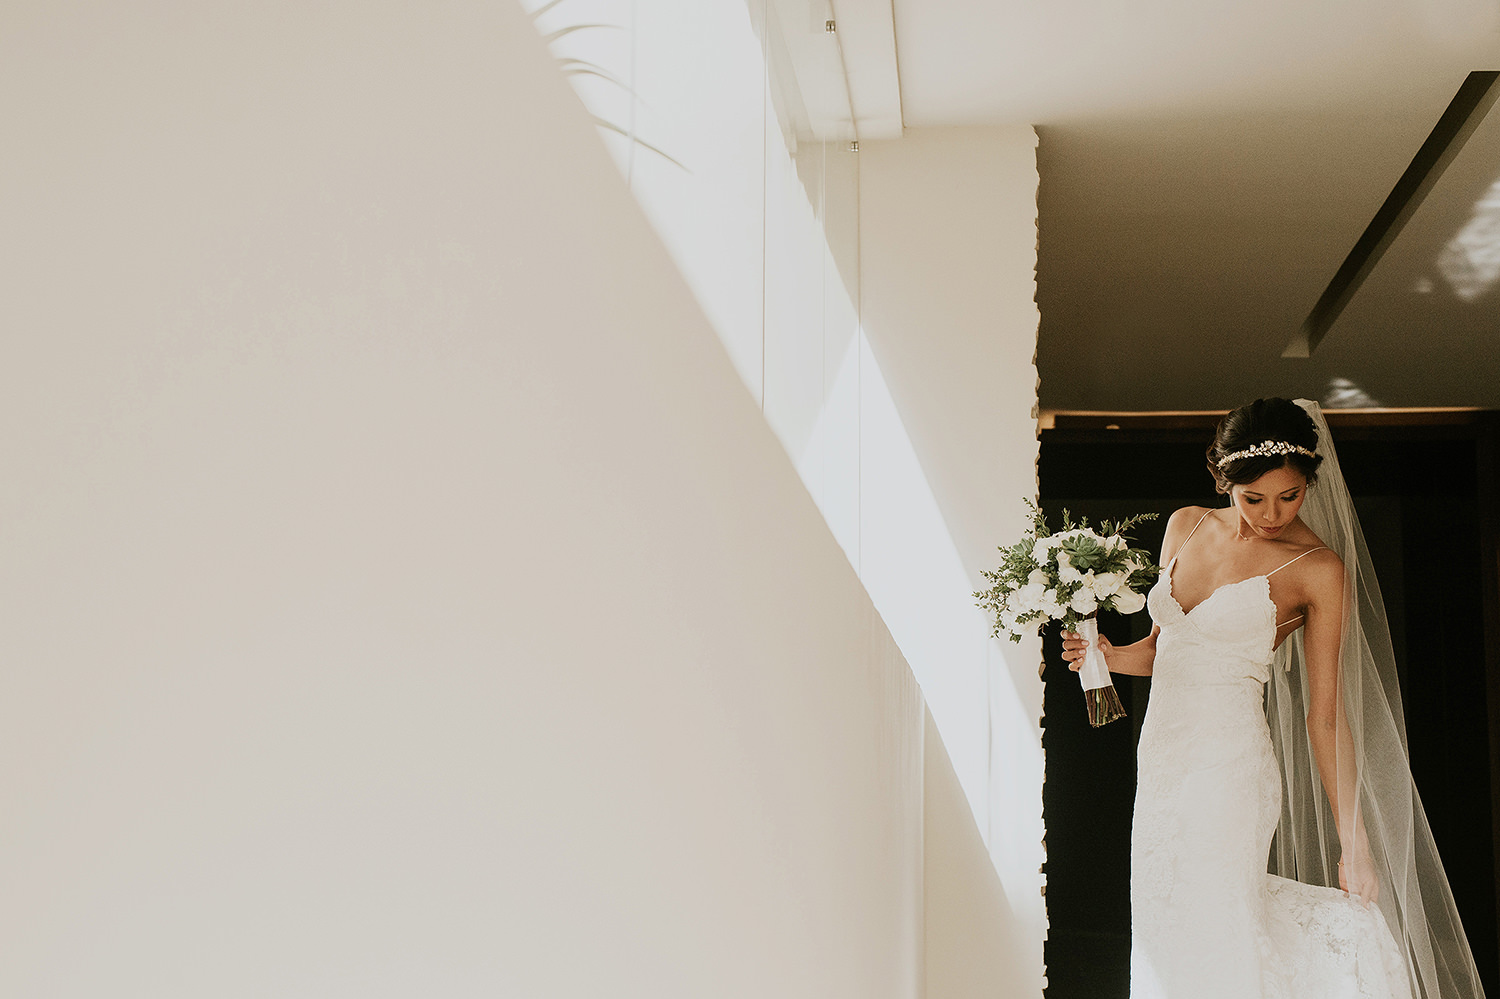 CherylReed_Wedding_Kape_Photography_WeddingPhotography_Mexico_Boda_Fotografia_Royalton_Hideway_Cancun_RivieraMaya_PlayadelCarmen_Beach_112FB_BLOG.jpg